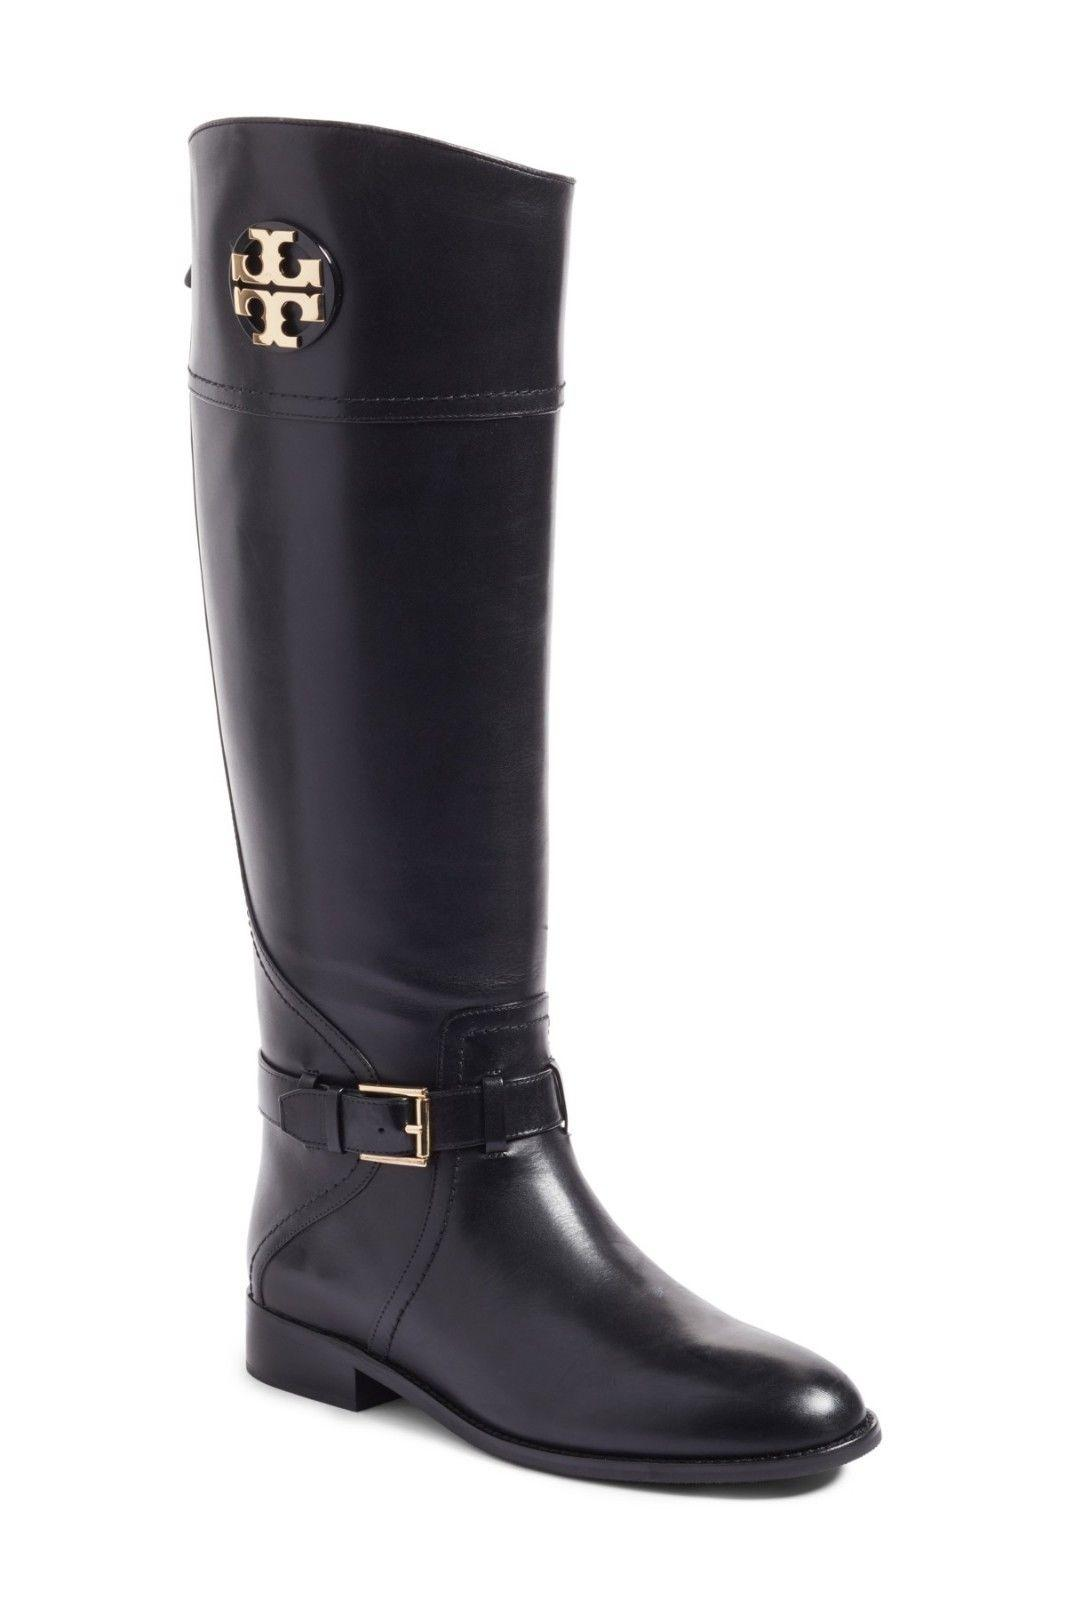 $495 Tory Burch ADELINE Riding Boots Tall Flat Equestrian Booties 10 Gold Logo